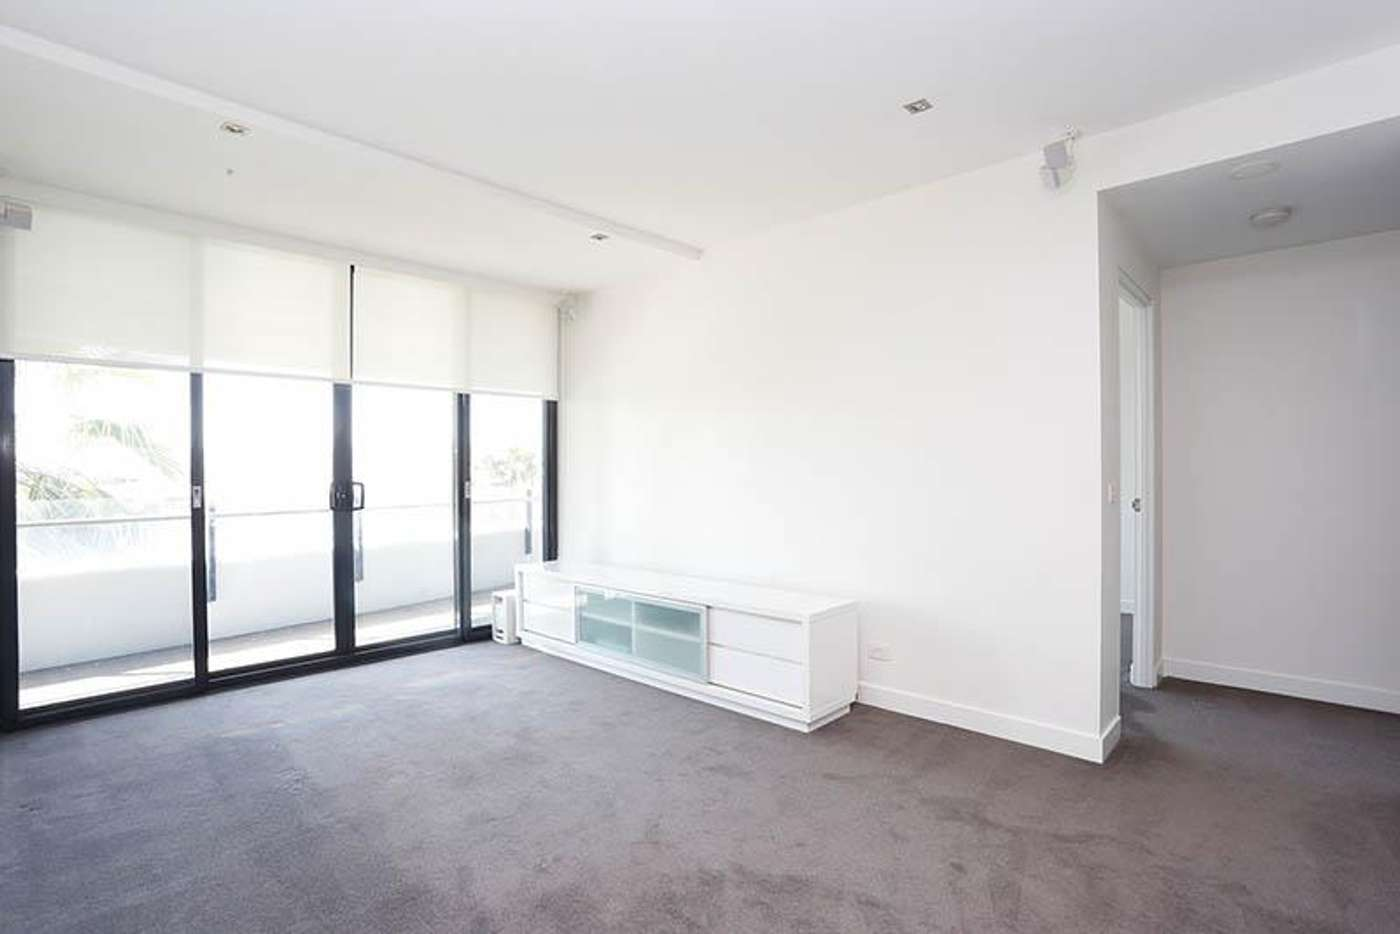 Fifth view of Homely apartment listing, 509/108 Bay Street, Port Melbourne VIC 3207